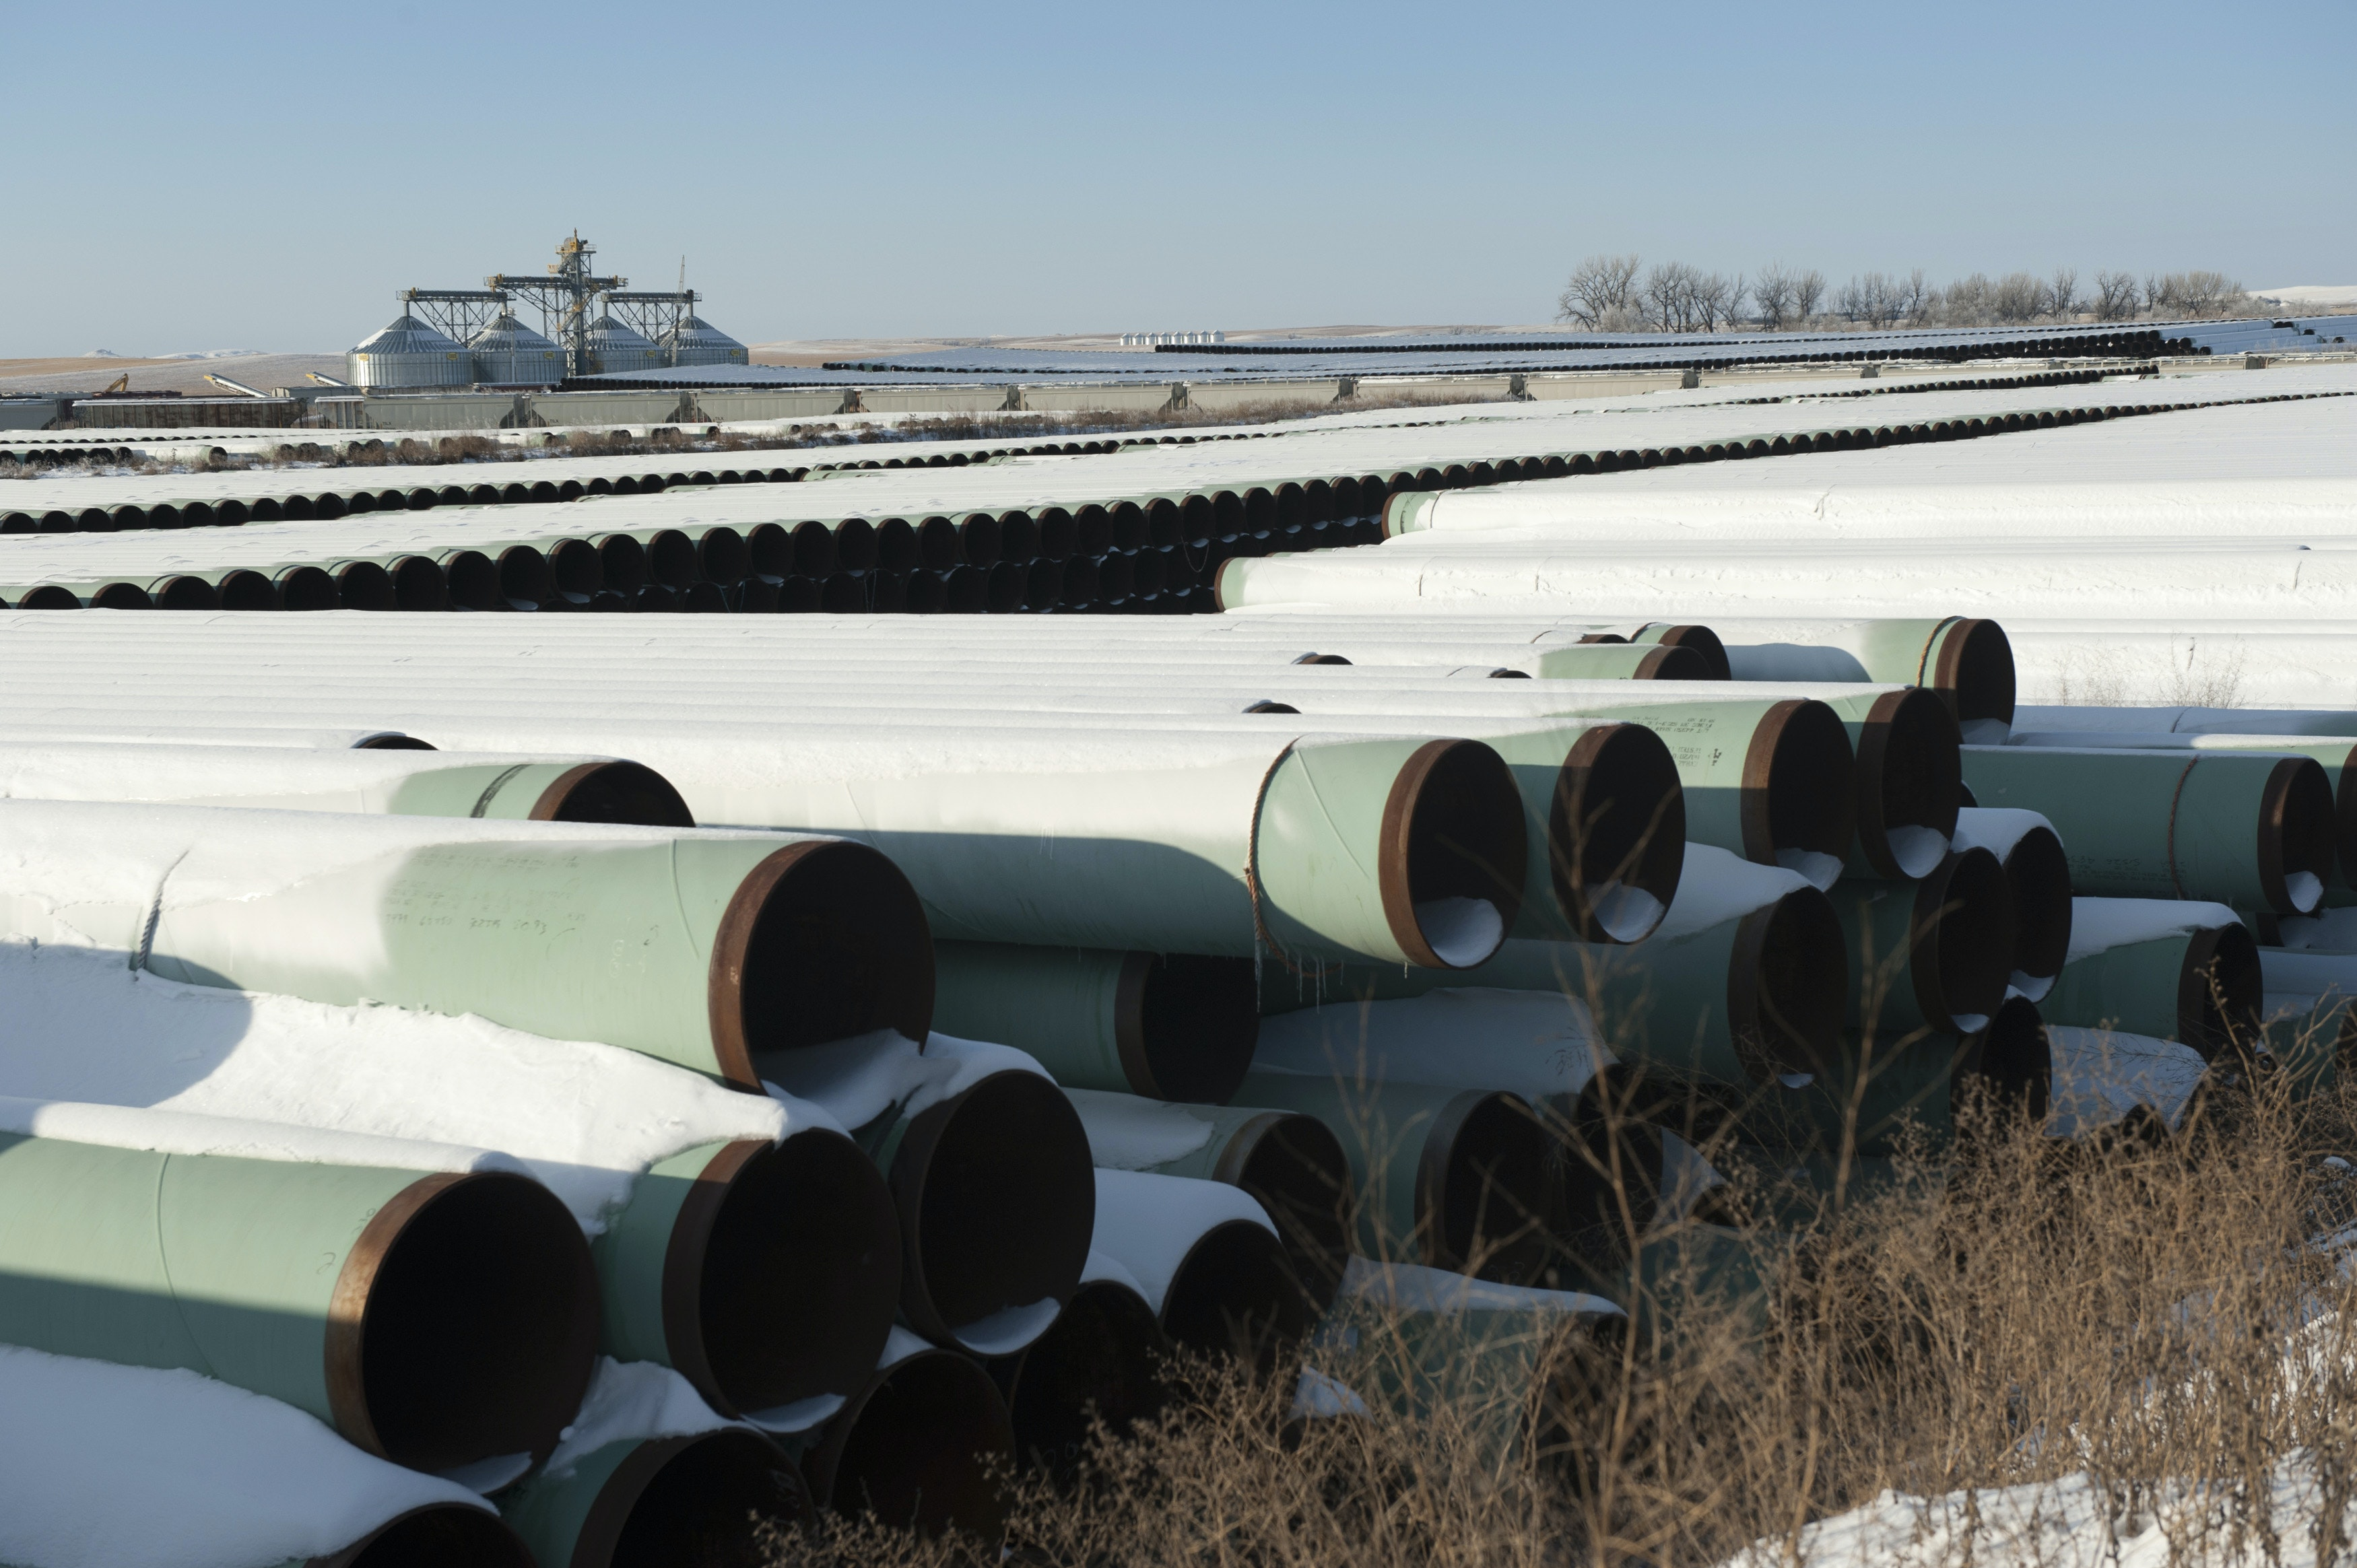 How should we calculate the CO2 impact of the Keystone pipeline proposal?